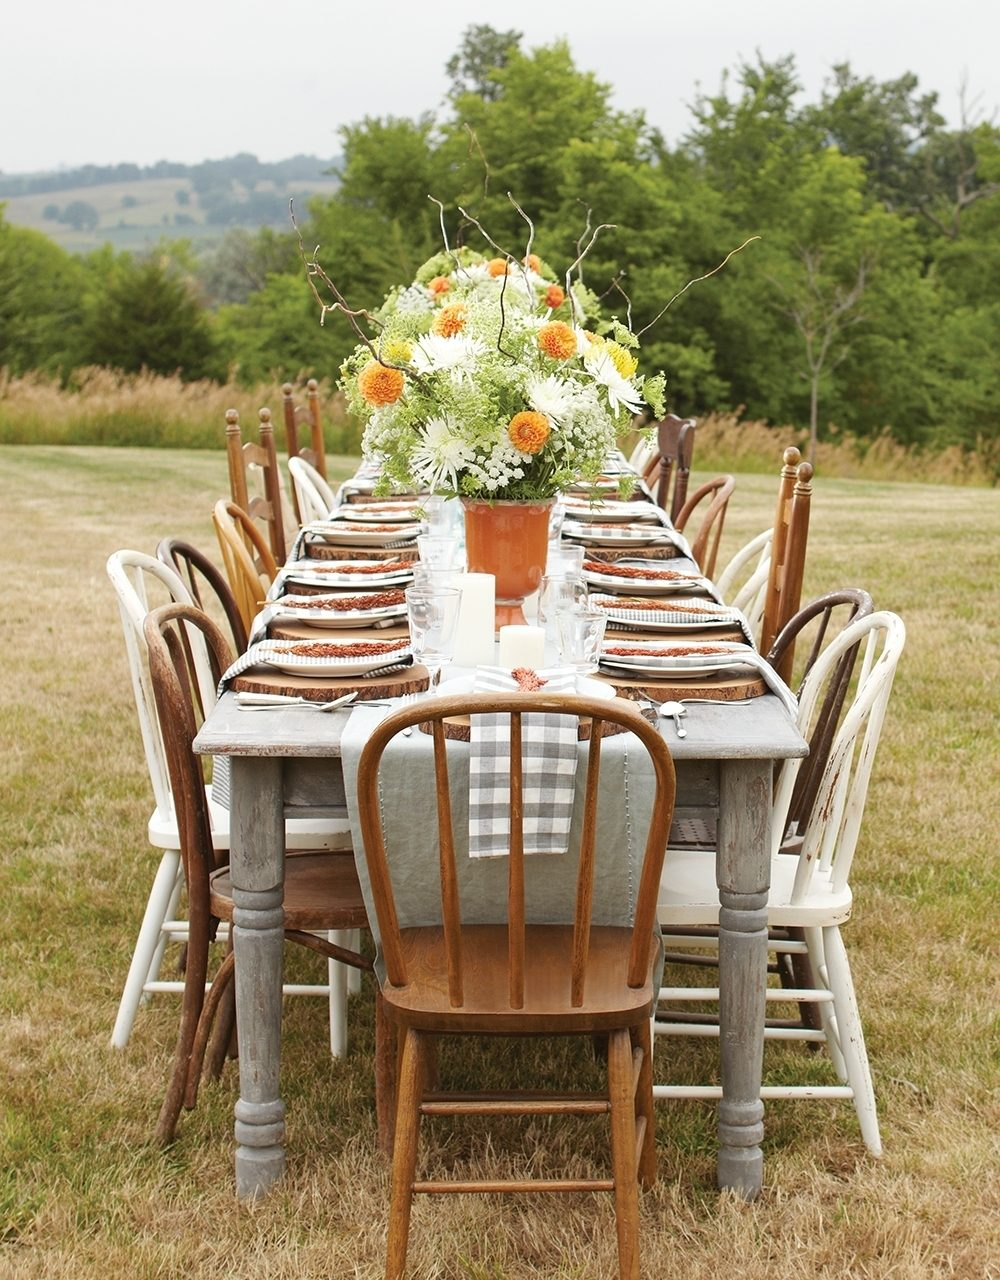 A table is set with mismatched vintage chairs and dinnerware for a casual outdoor fall party.